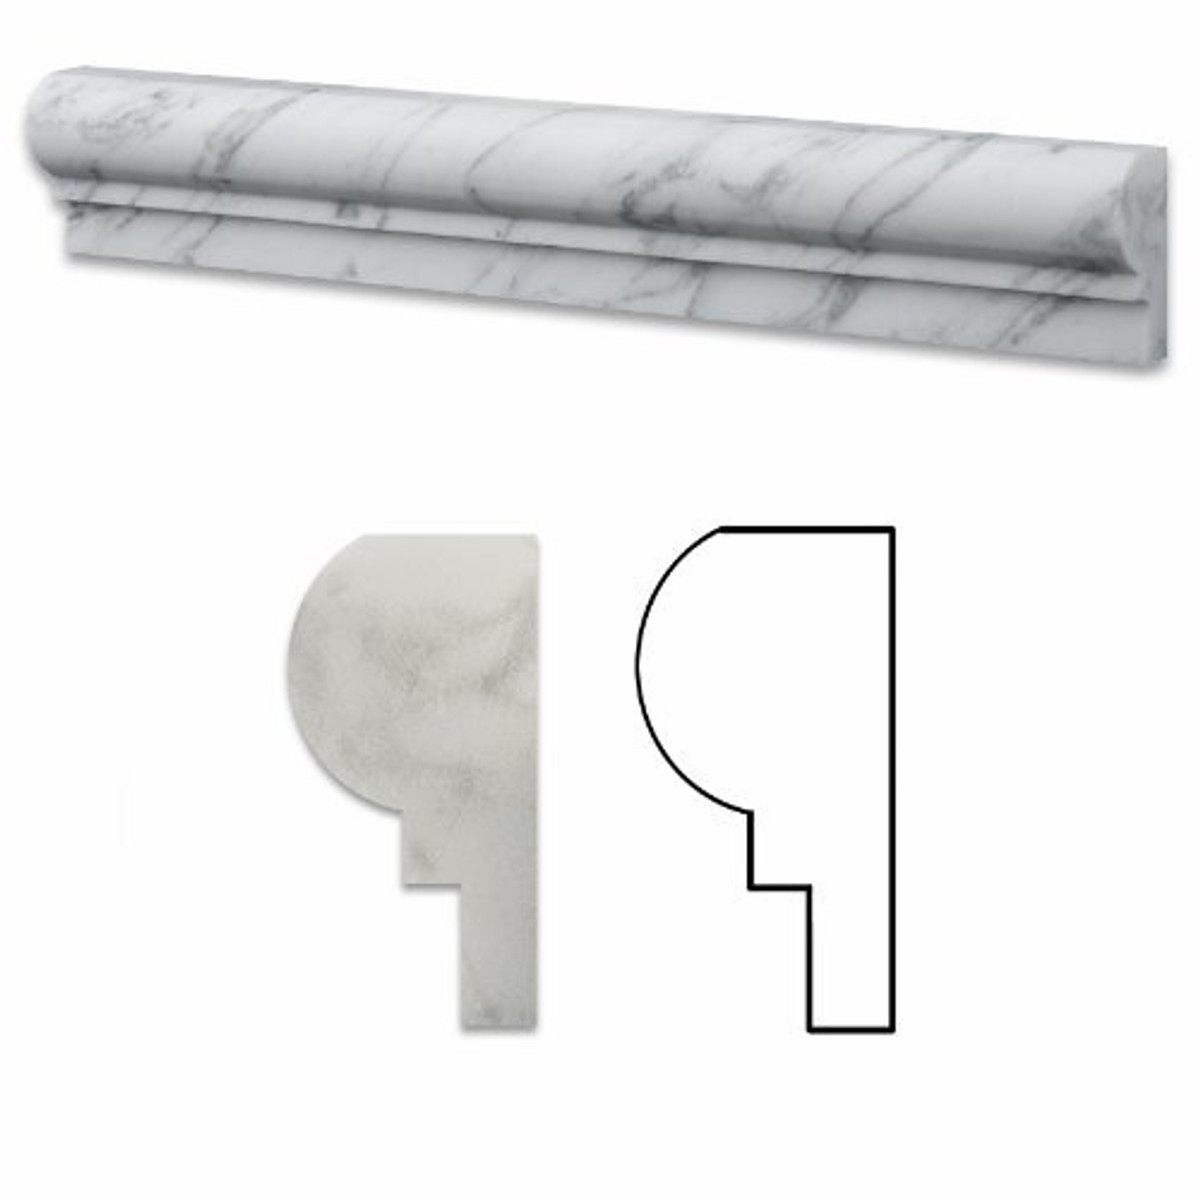 Carrara Marble Trim Pieces